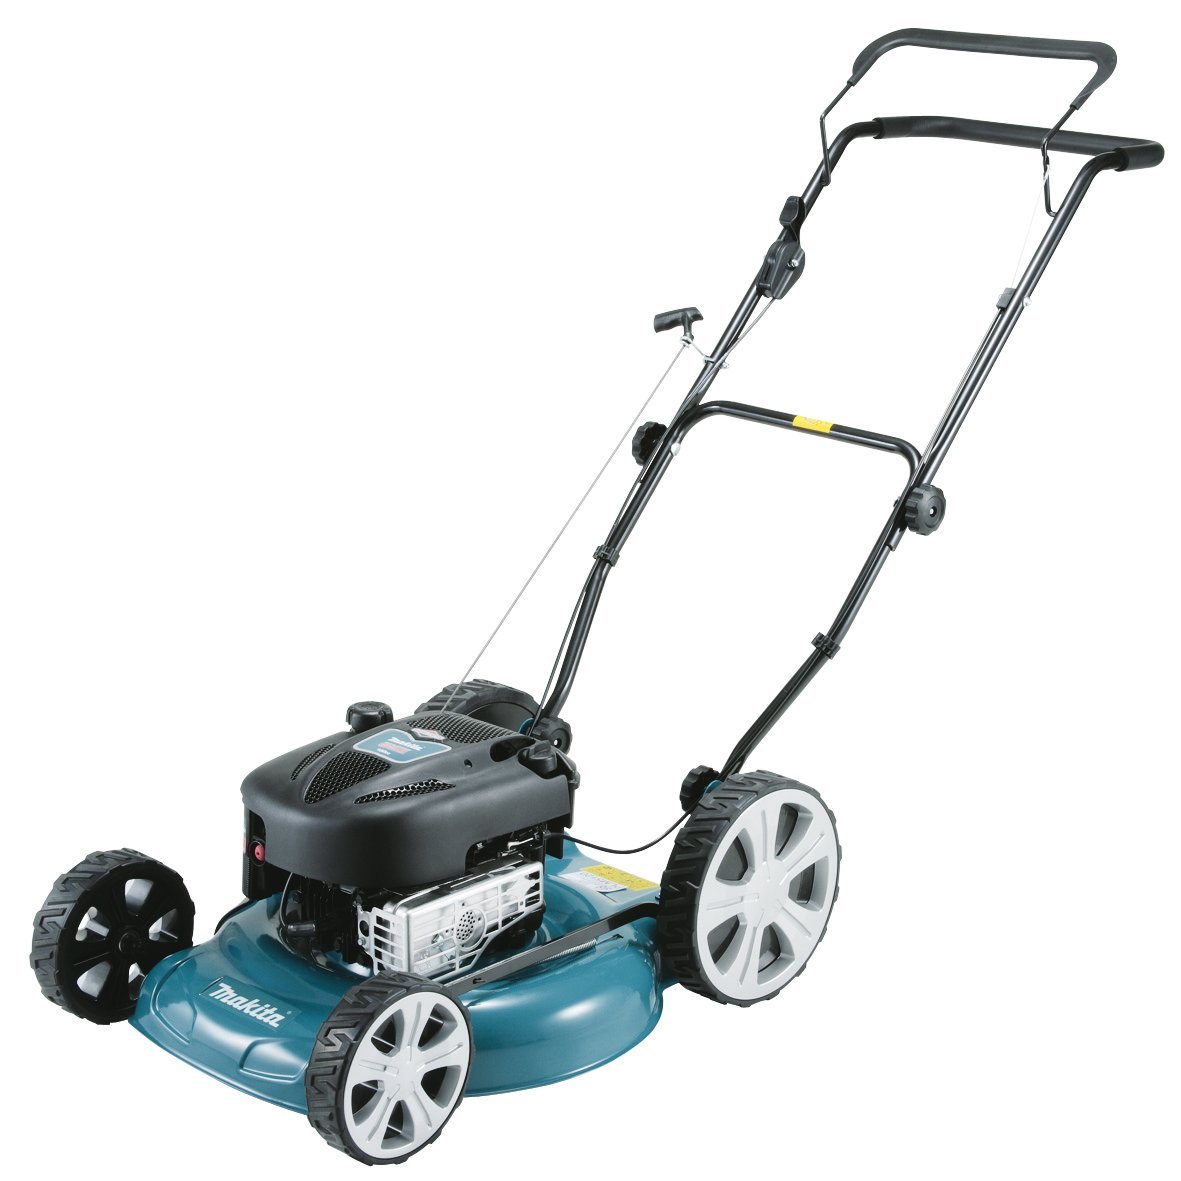 Makita PLM5120 - Cortacésped a gasolina: Amazon.es: Bricolaje y ...